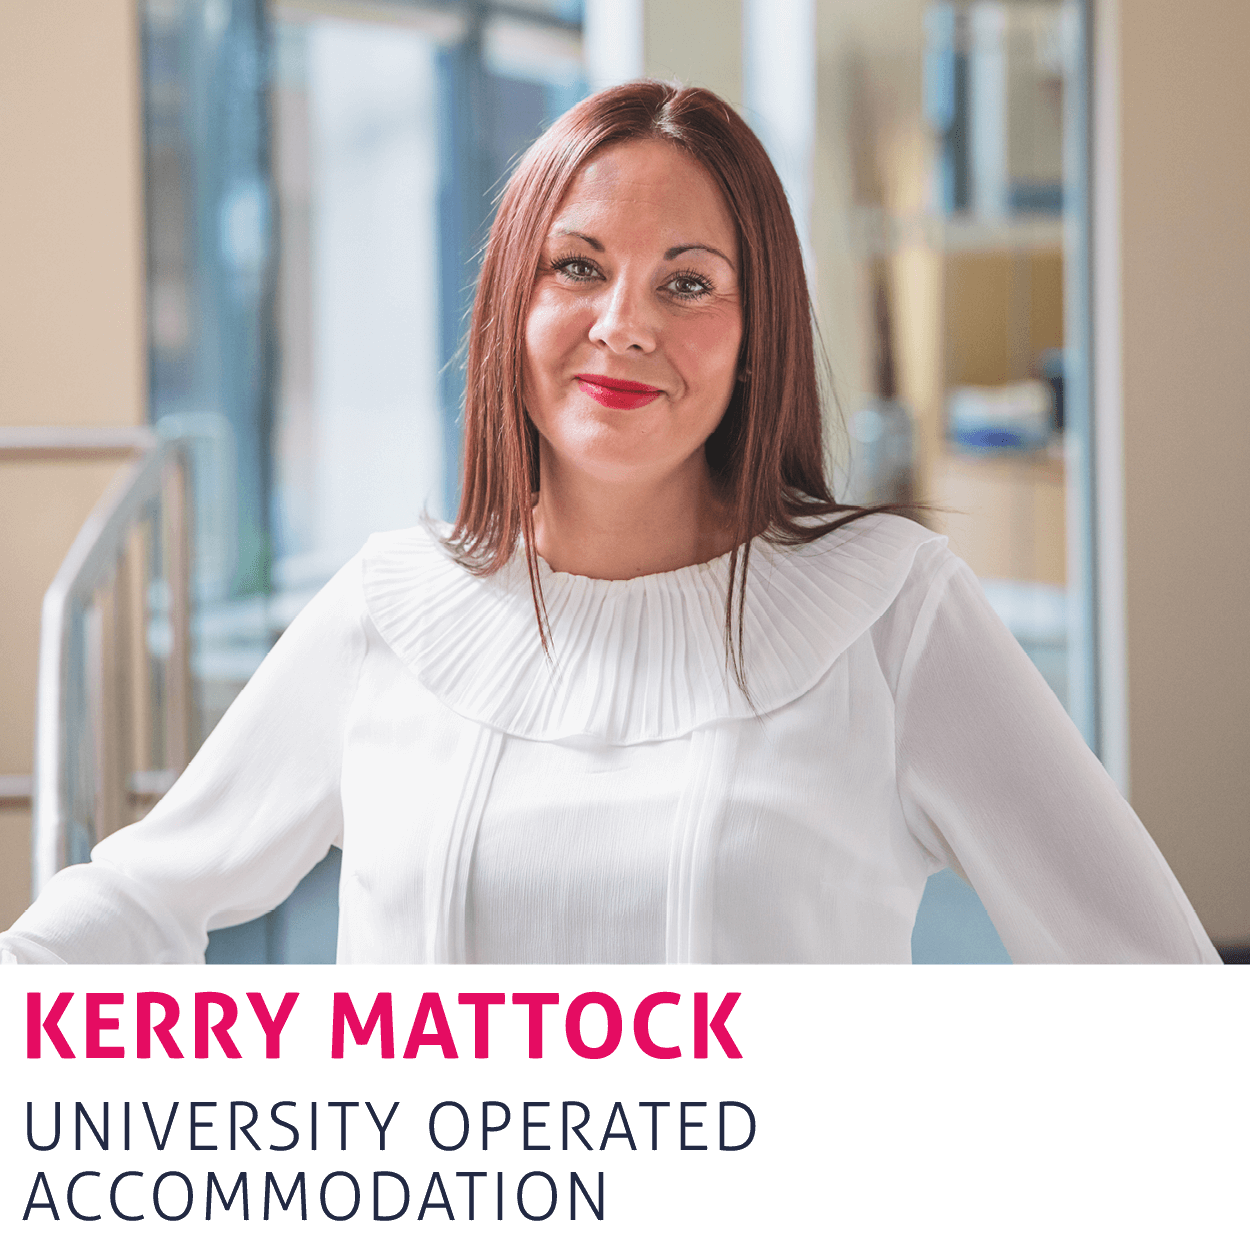 Link to Kerry Mattock's contact details.